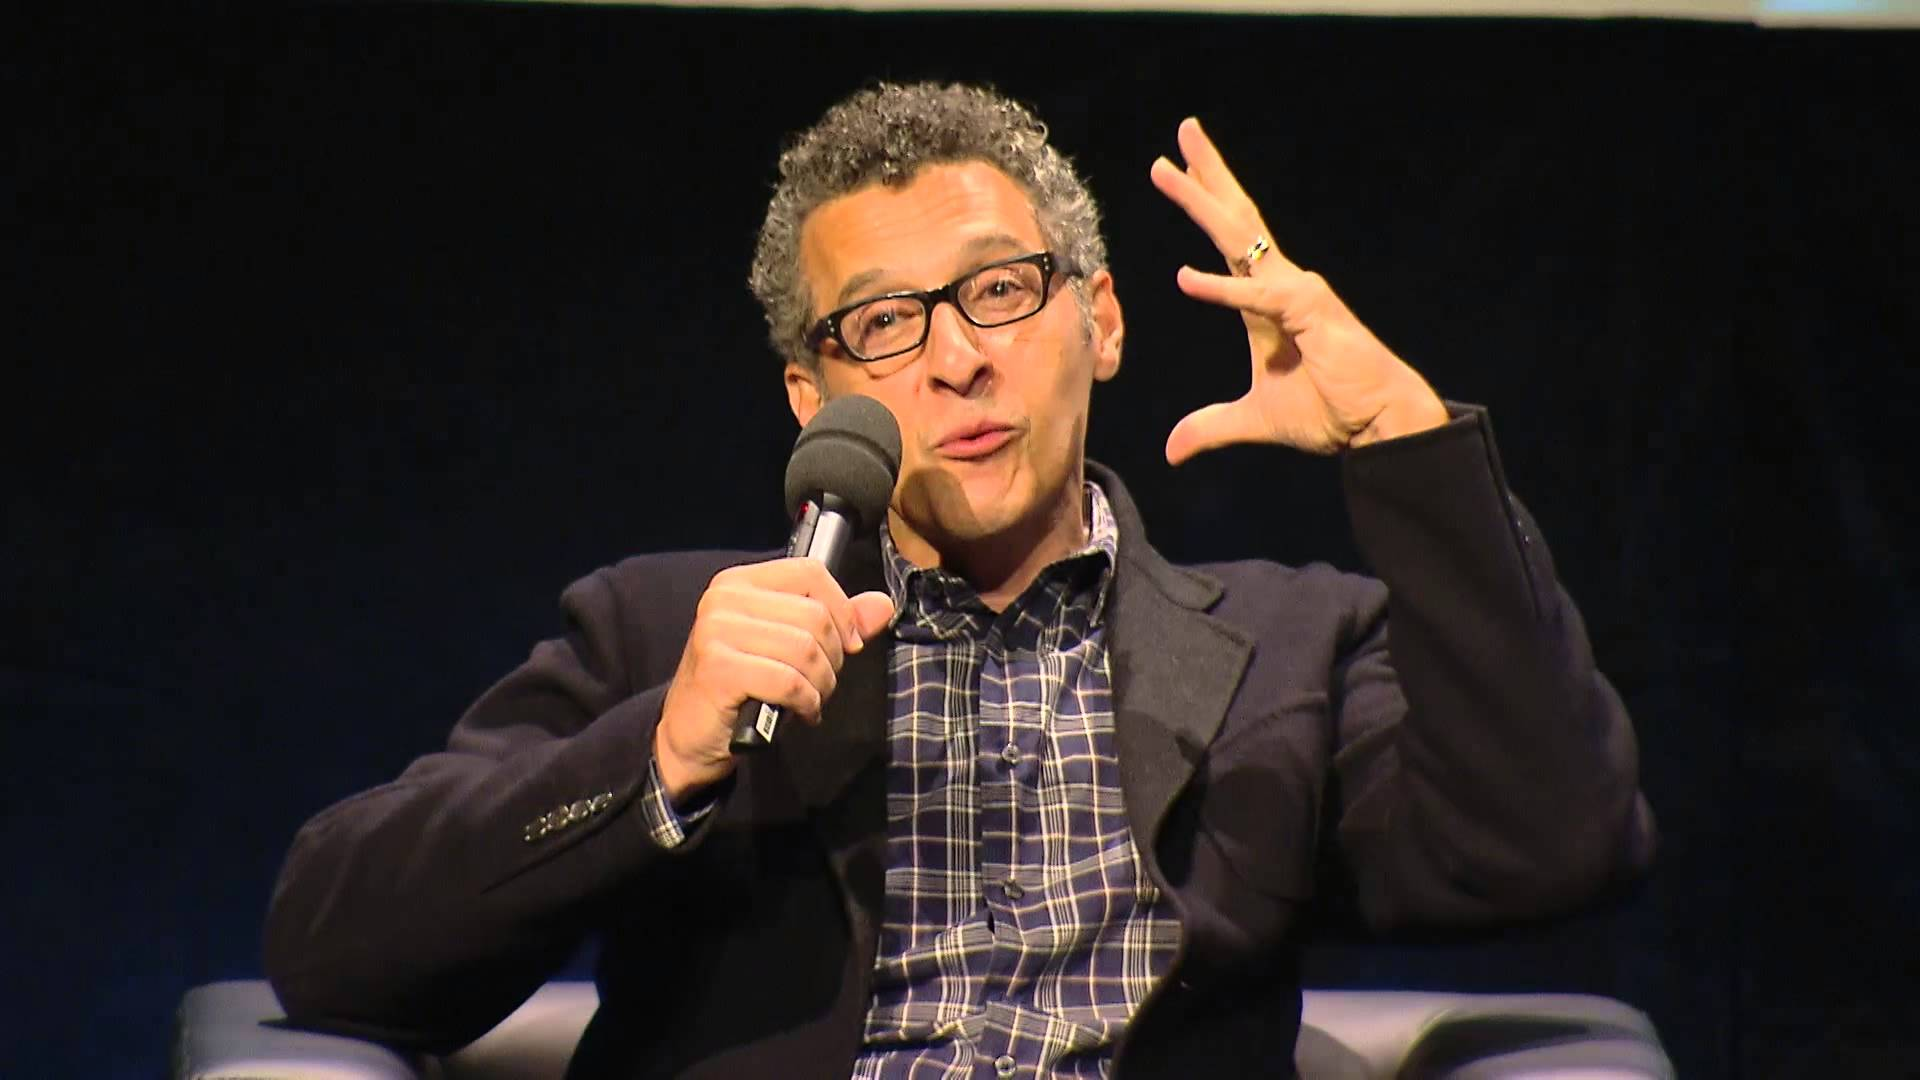 John Turturro Backgrounds